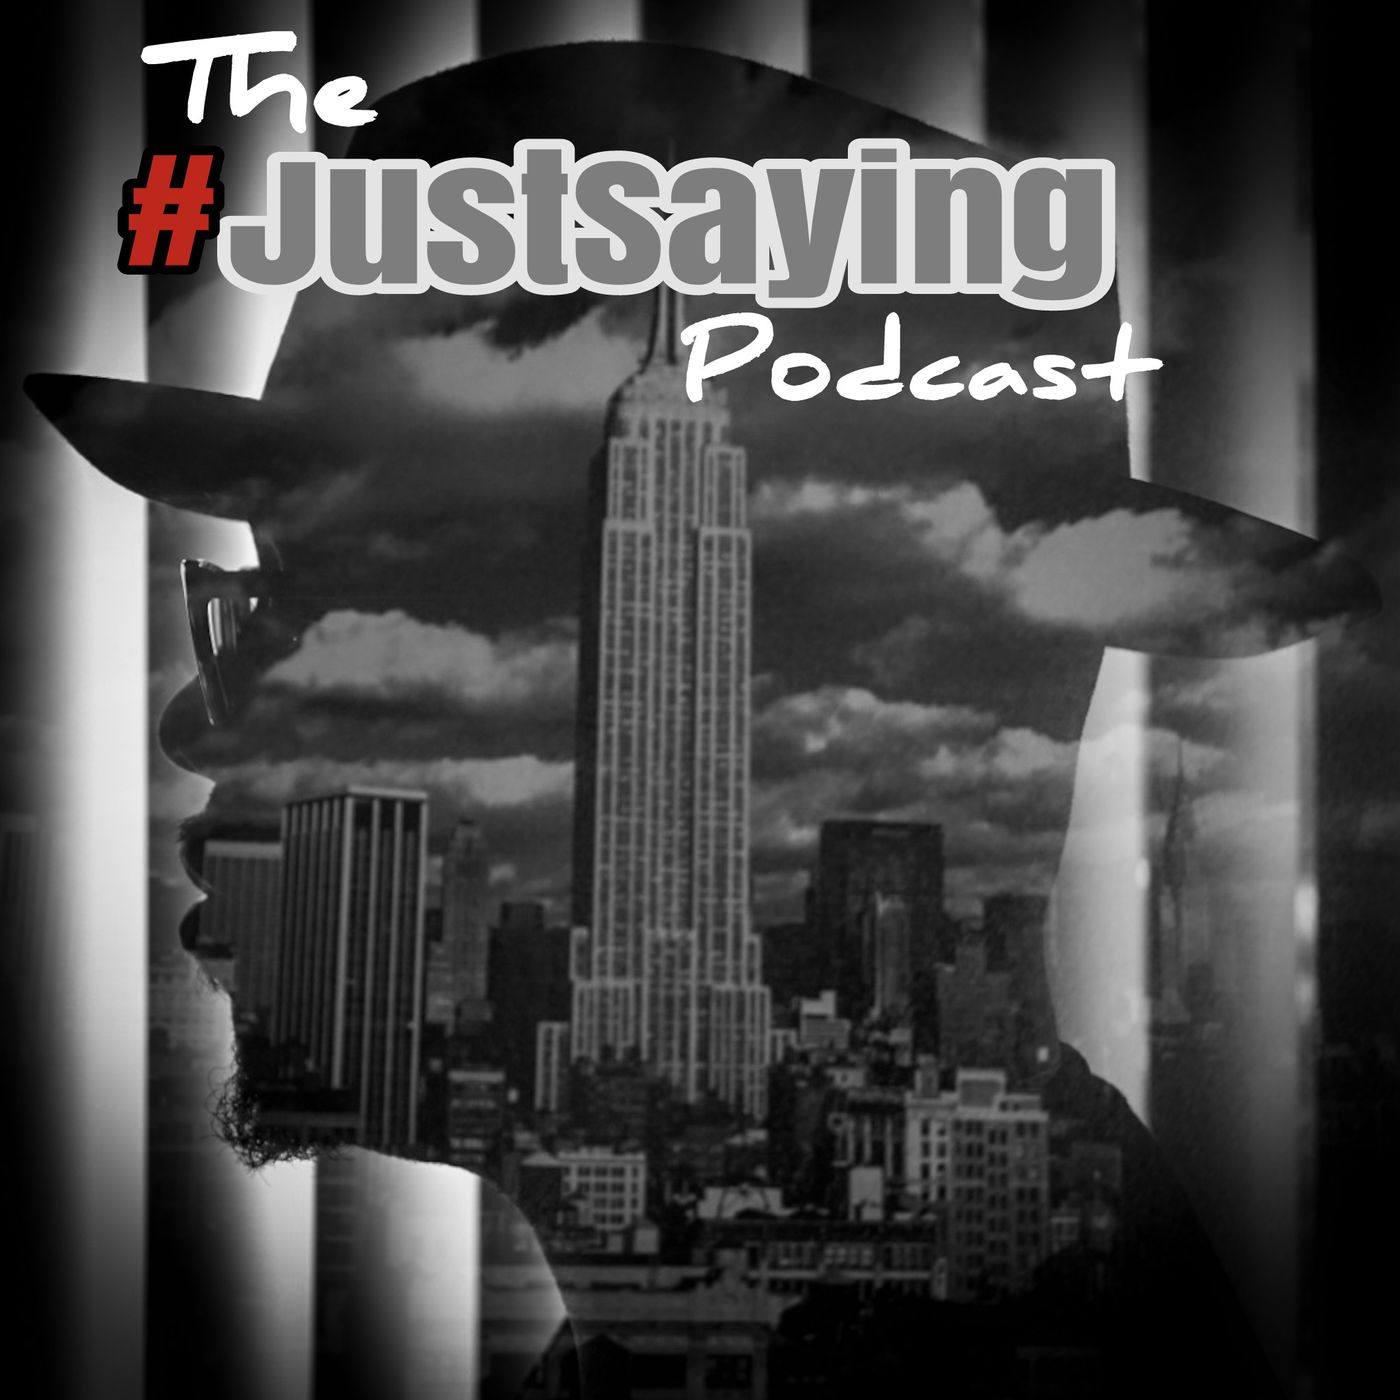 #JustSaying Podcast Episode 30: Dirty Thirty